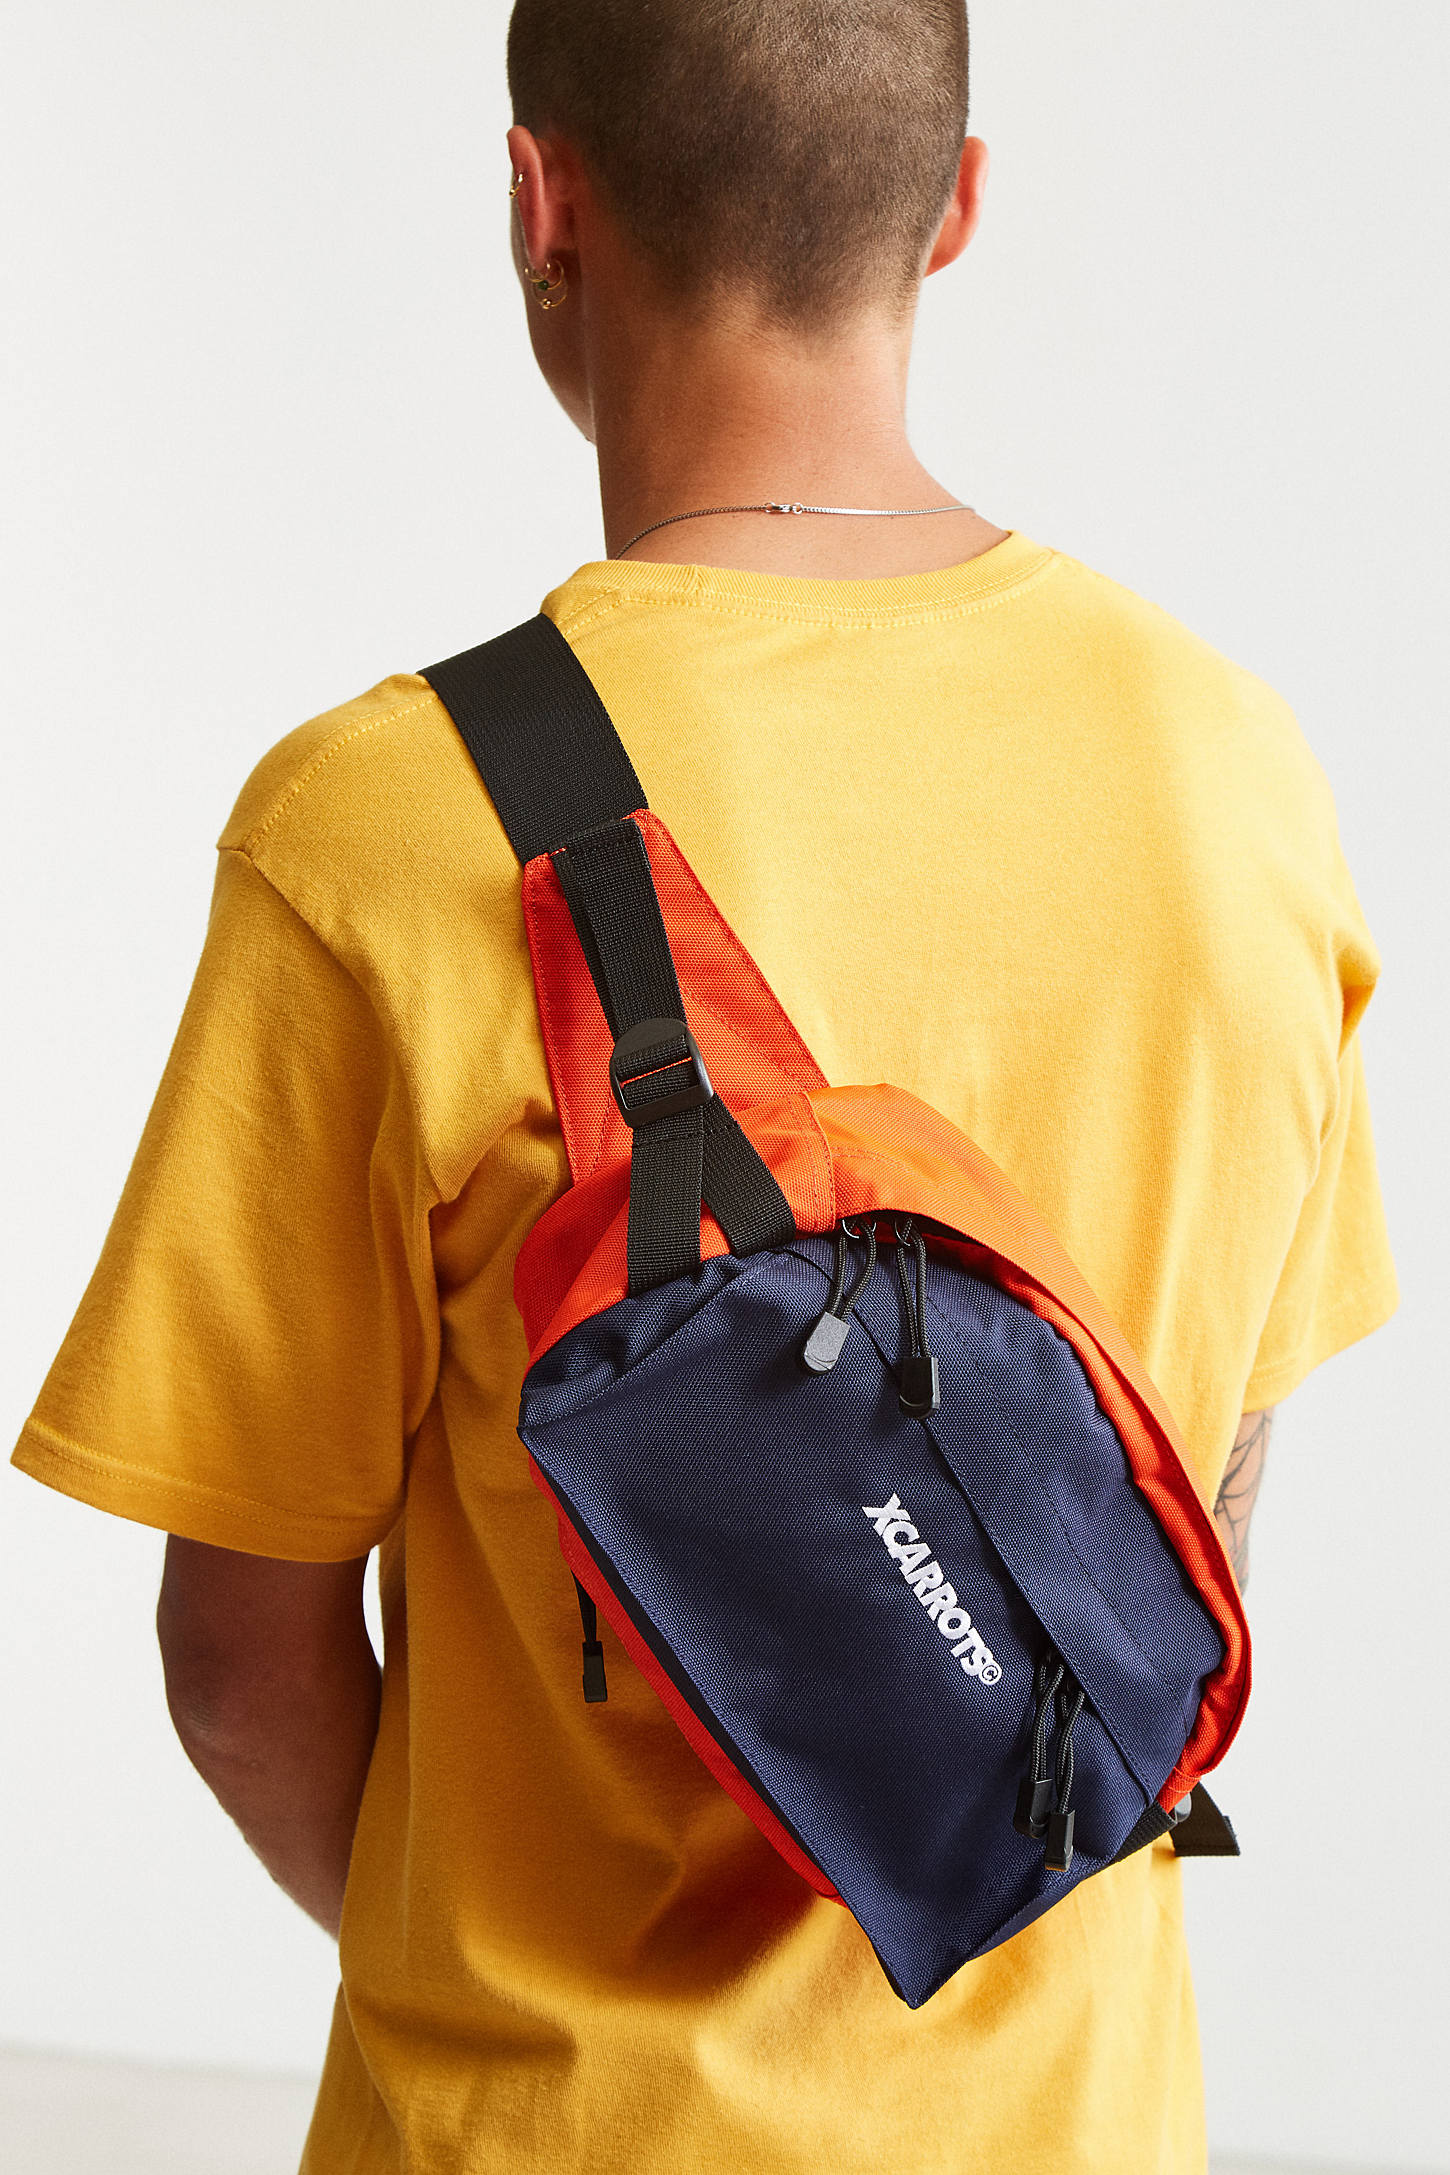 Carrots X X-Large Sling Bag | Urban Outfitters